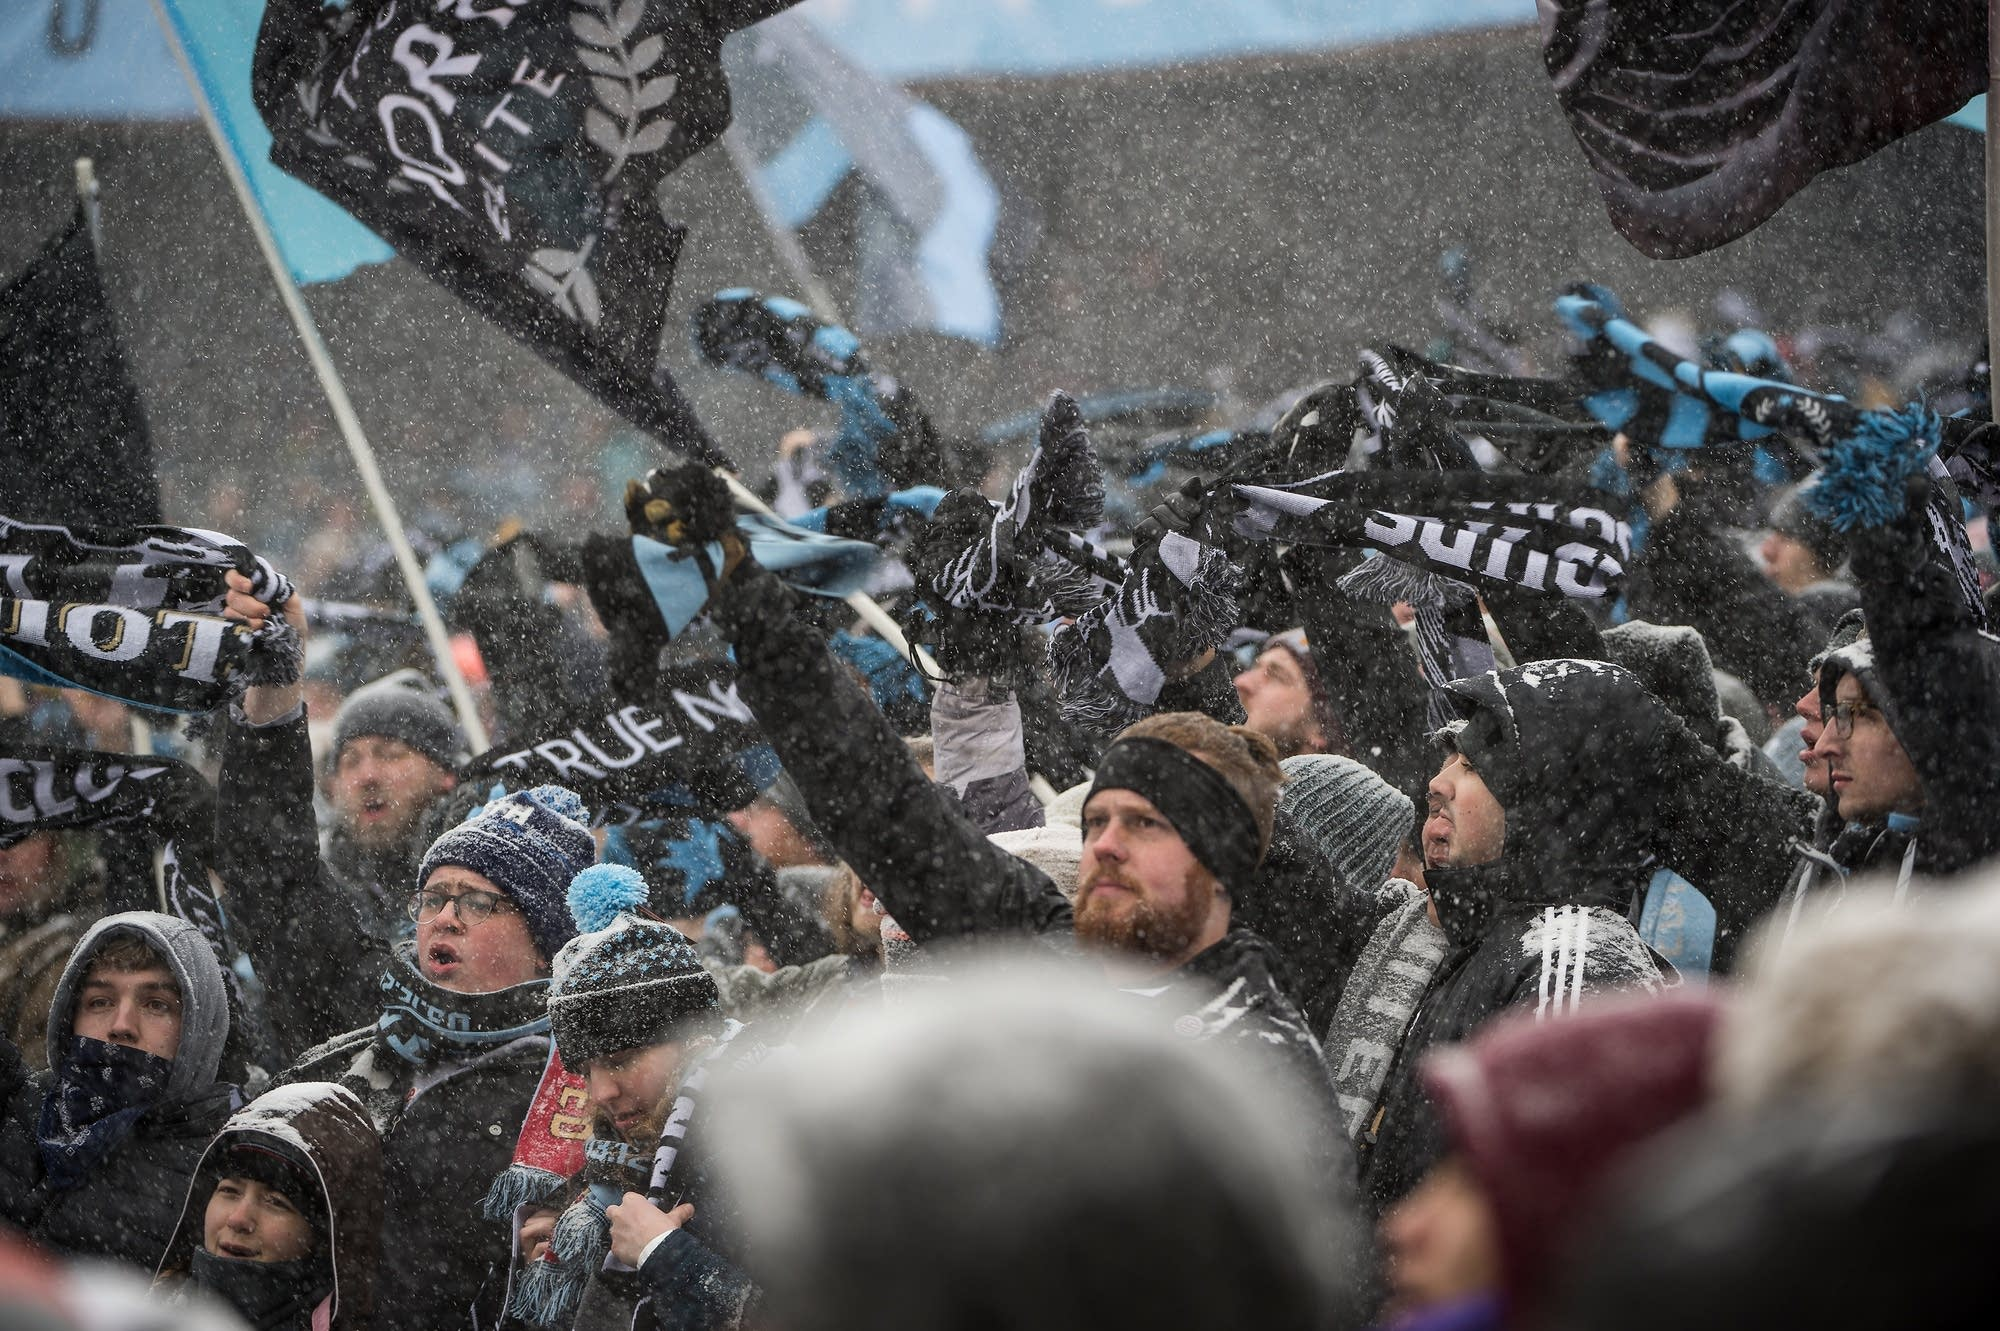 Minnesota United fans displayed their support and spirit in full regalia.